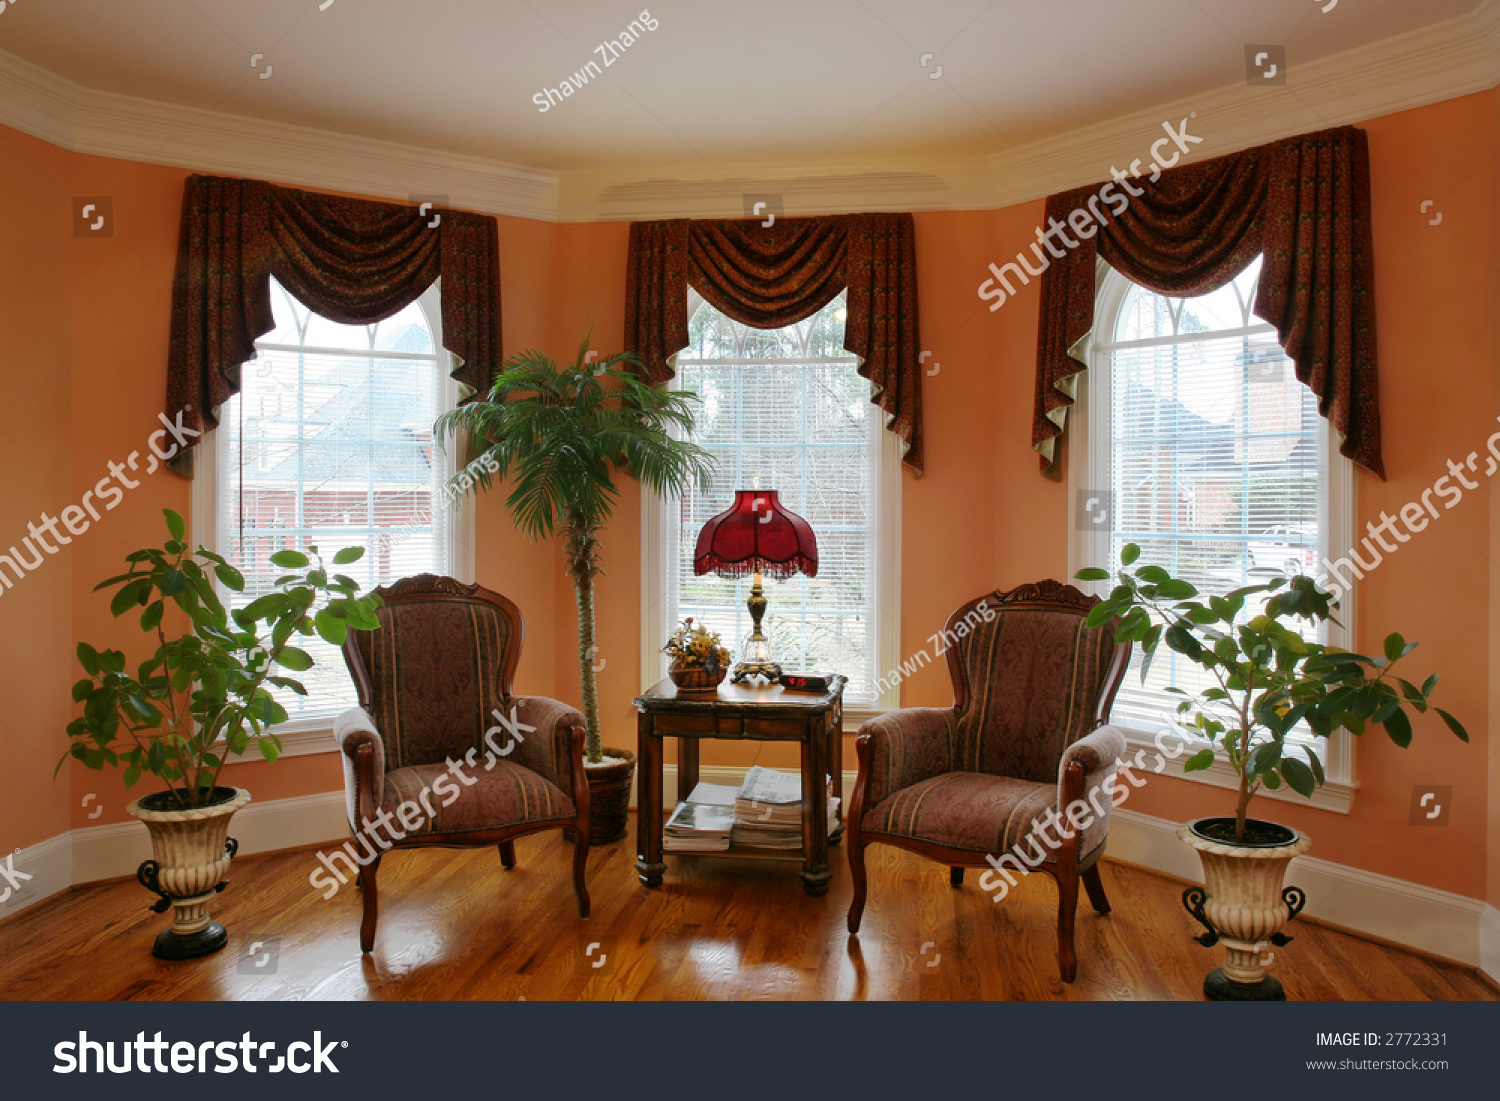 living room with bay window stock photo 2772331 shutterstock